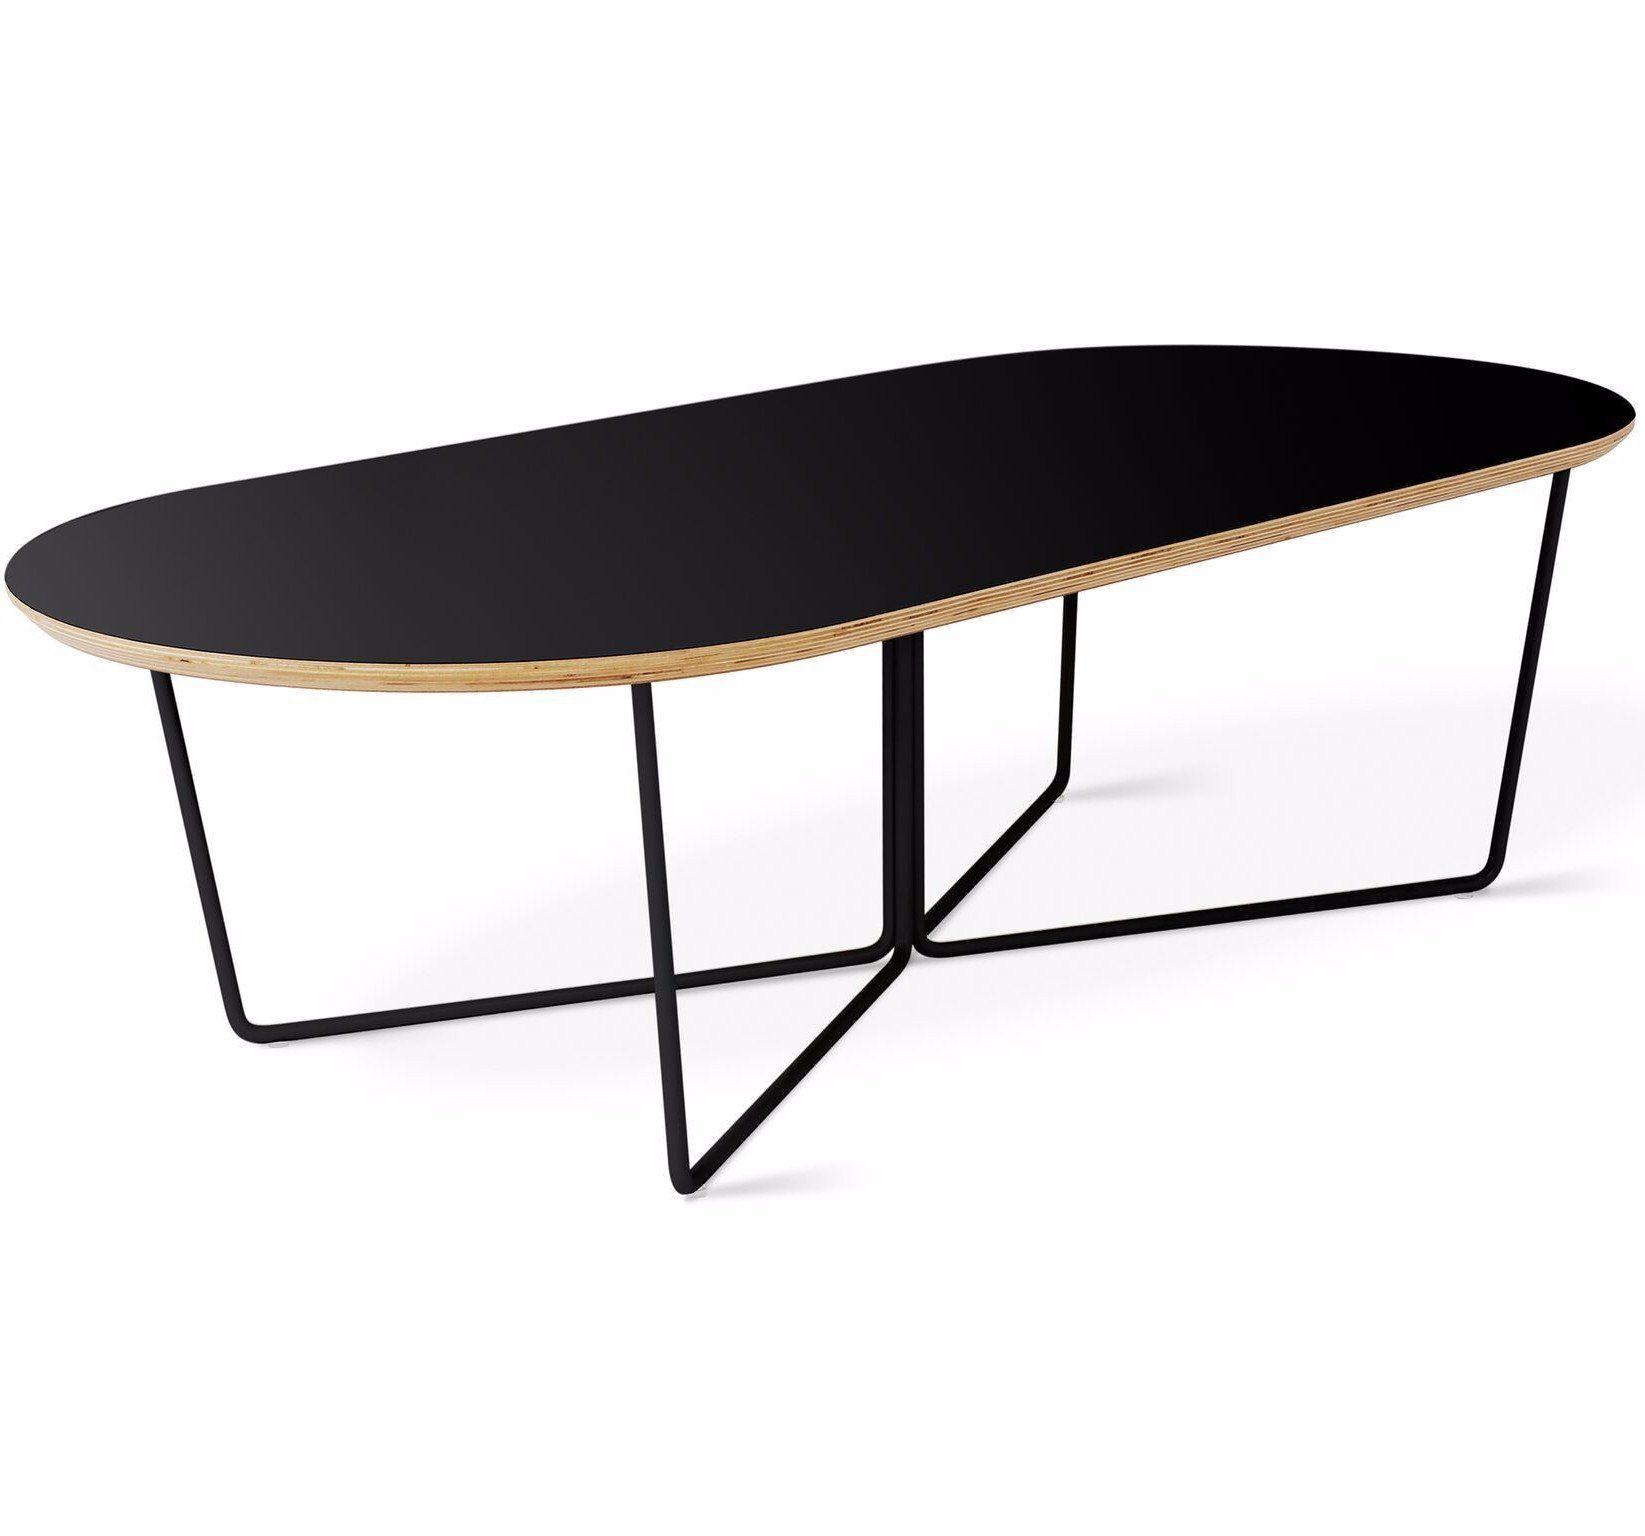 Array Oval Coffee Table Oval Coffee Tables Coffee Table Coffee Table Design [ 1536 x 1645 Pixel ]